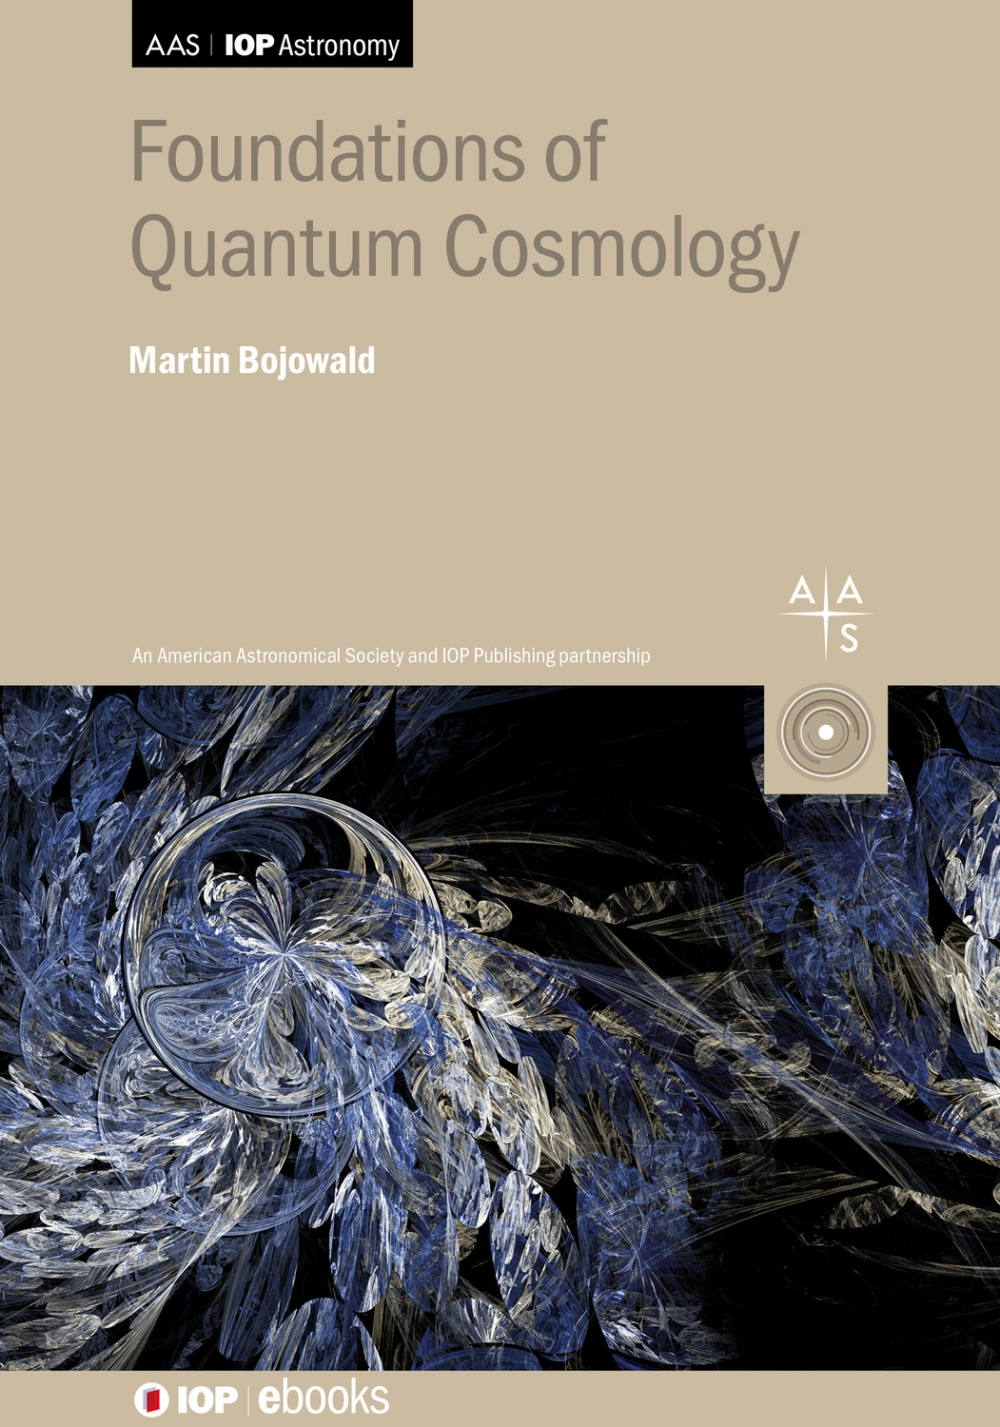 Jacket image for Foundations of Quantum Cosmology